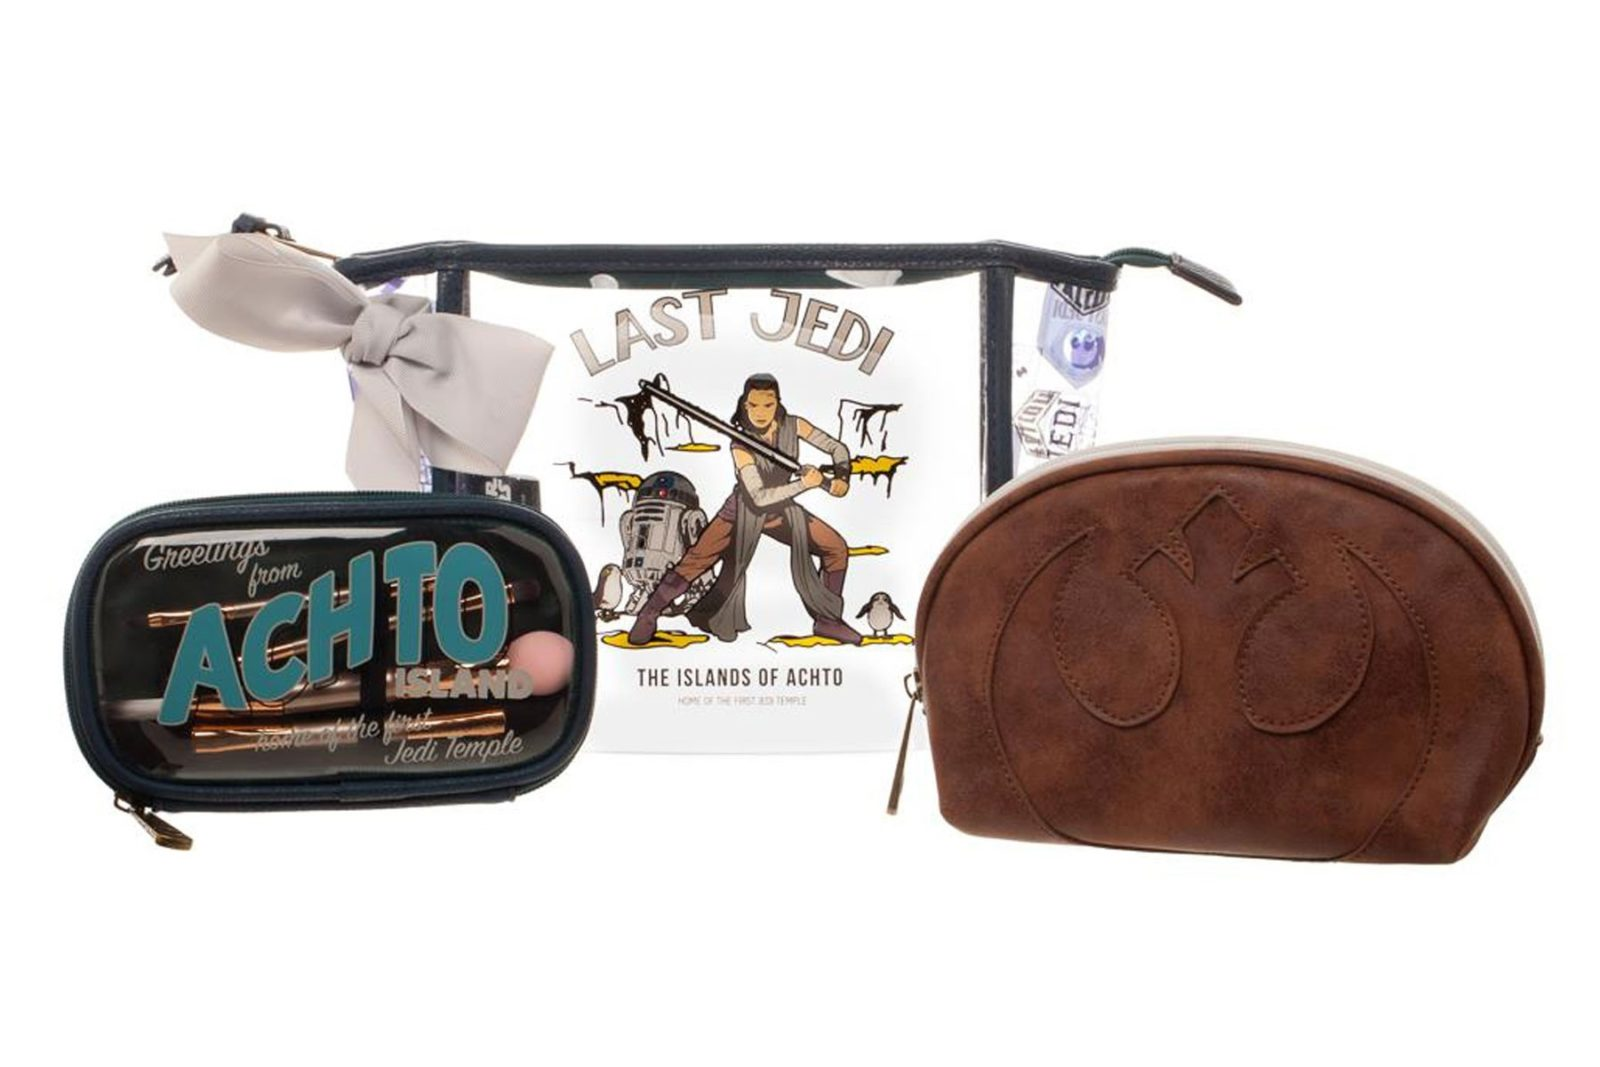 Star Wars The Last Jedi Cosmetic Bag Set